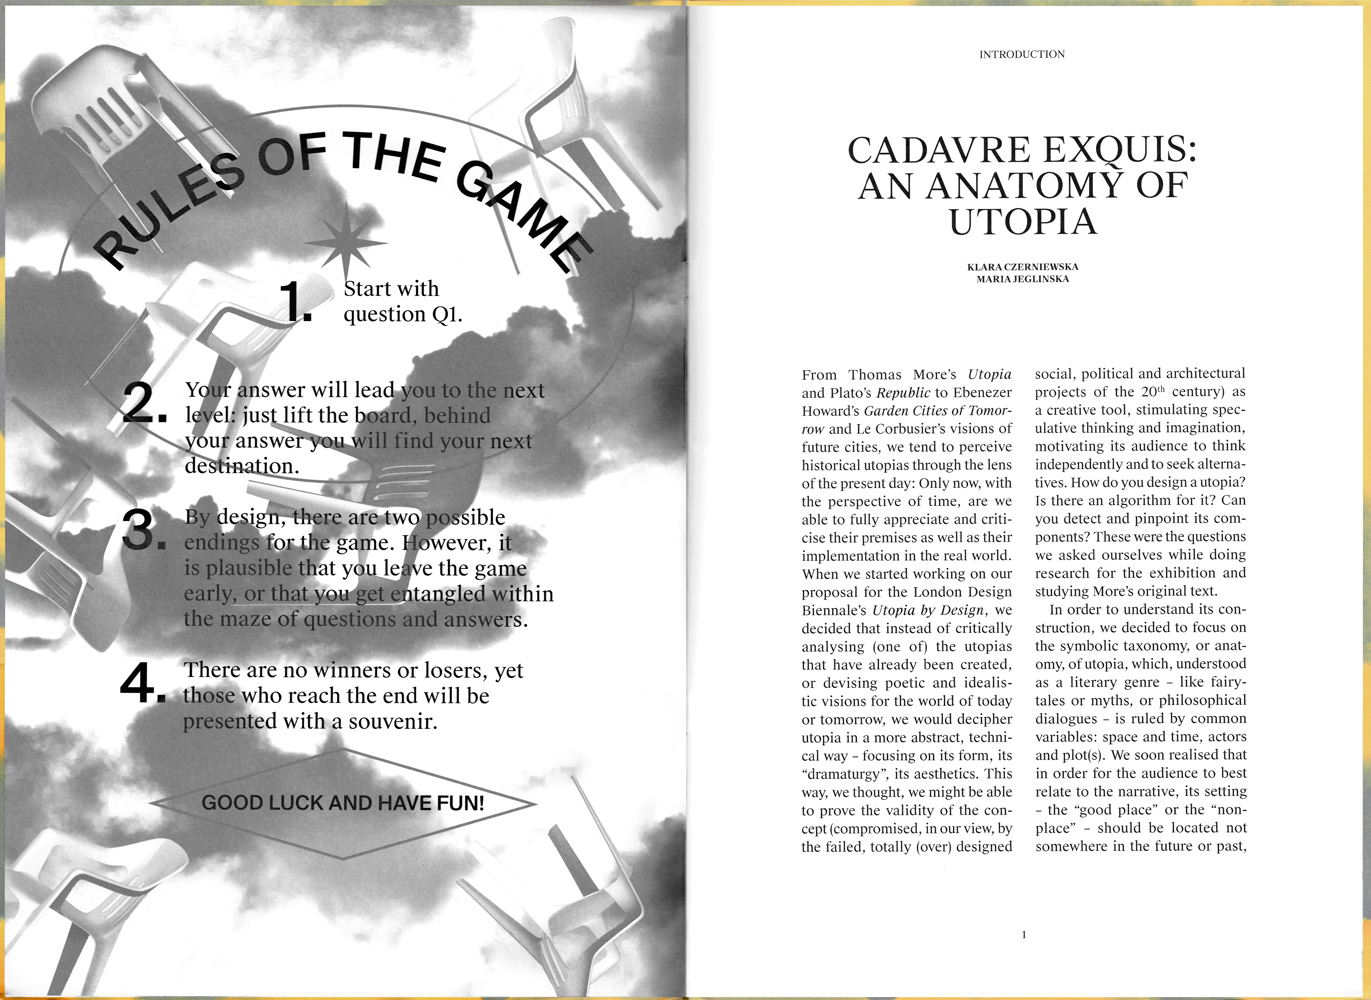 Studio Pyda Cadavre Exquis: An Anatomy of Utopia